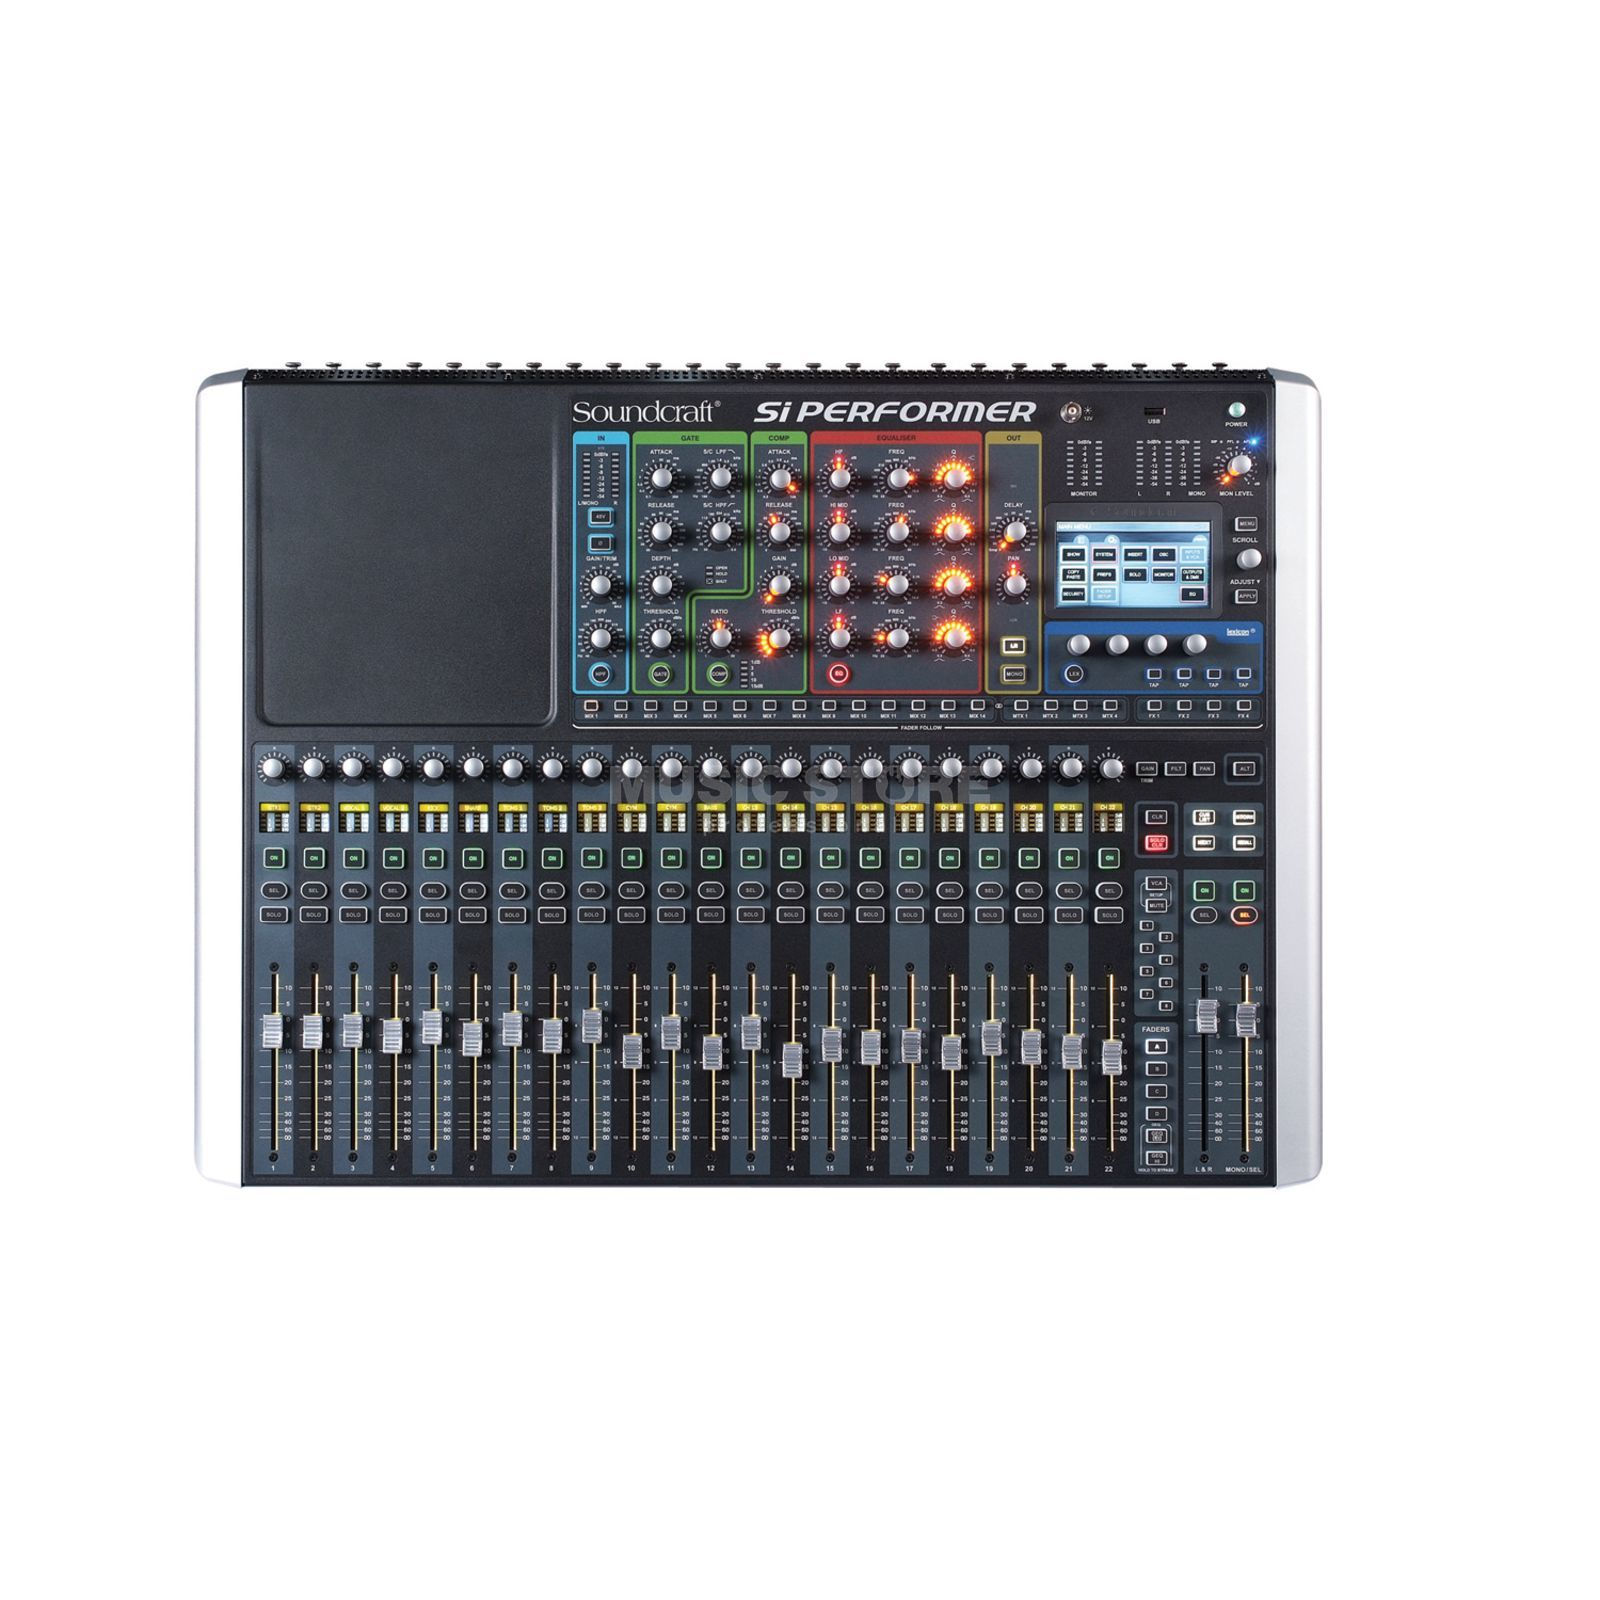 Soundcraft SI Performer 2 with DMX512 Port, 24 Fader Produktbillede